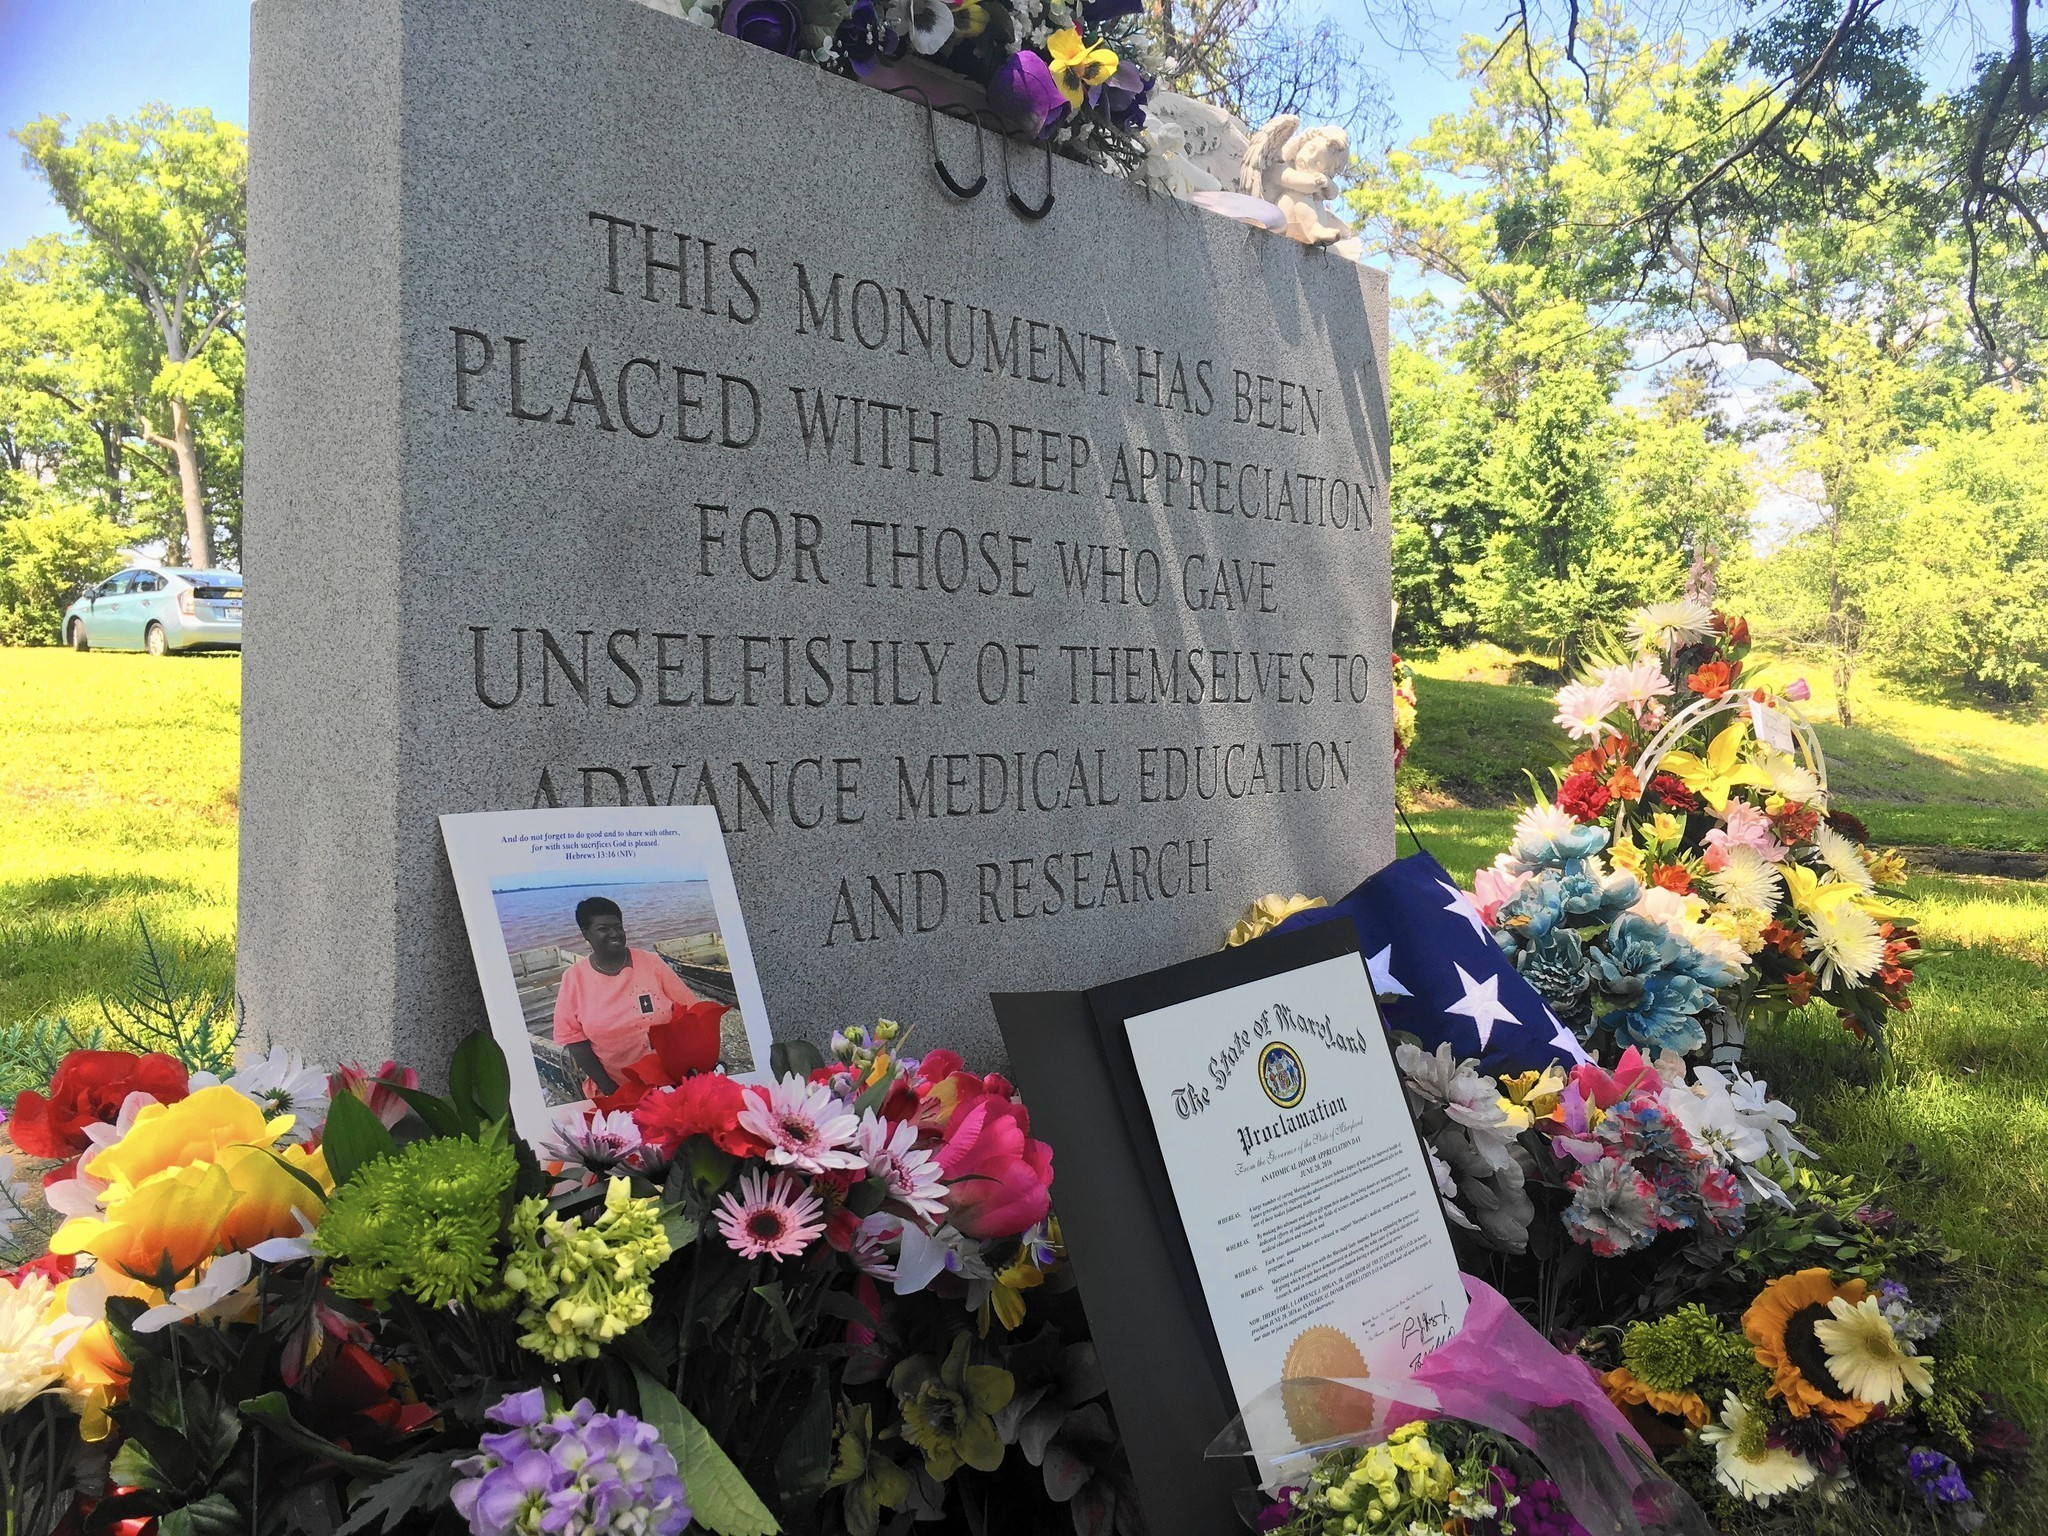 Hundreds Attend Mass Burial Honoring Dead Who Gave Bodies To Science